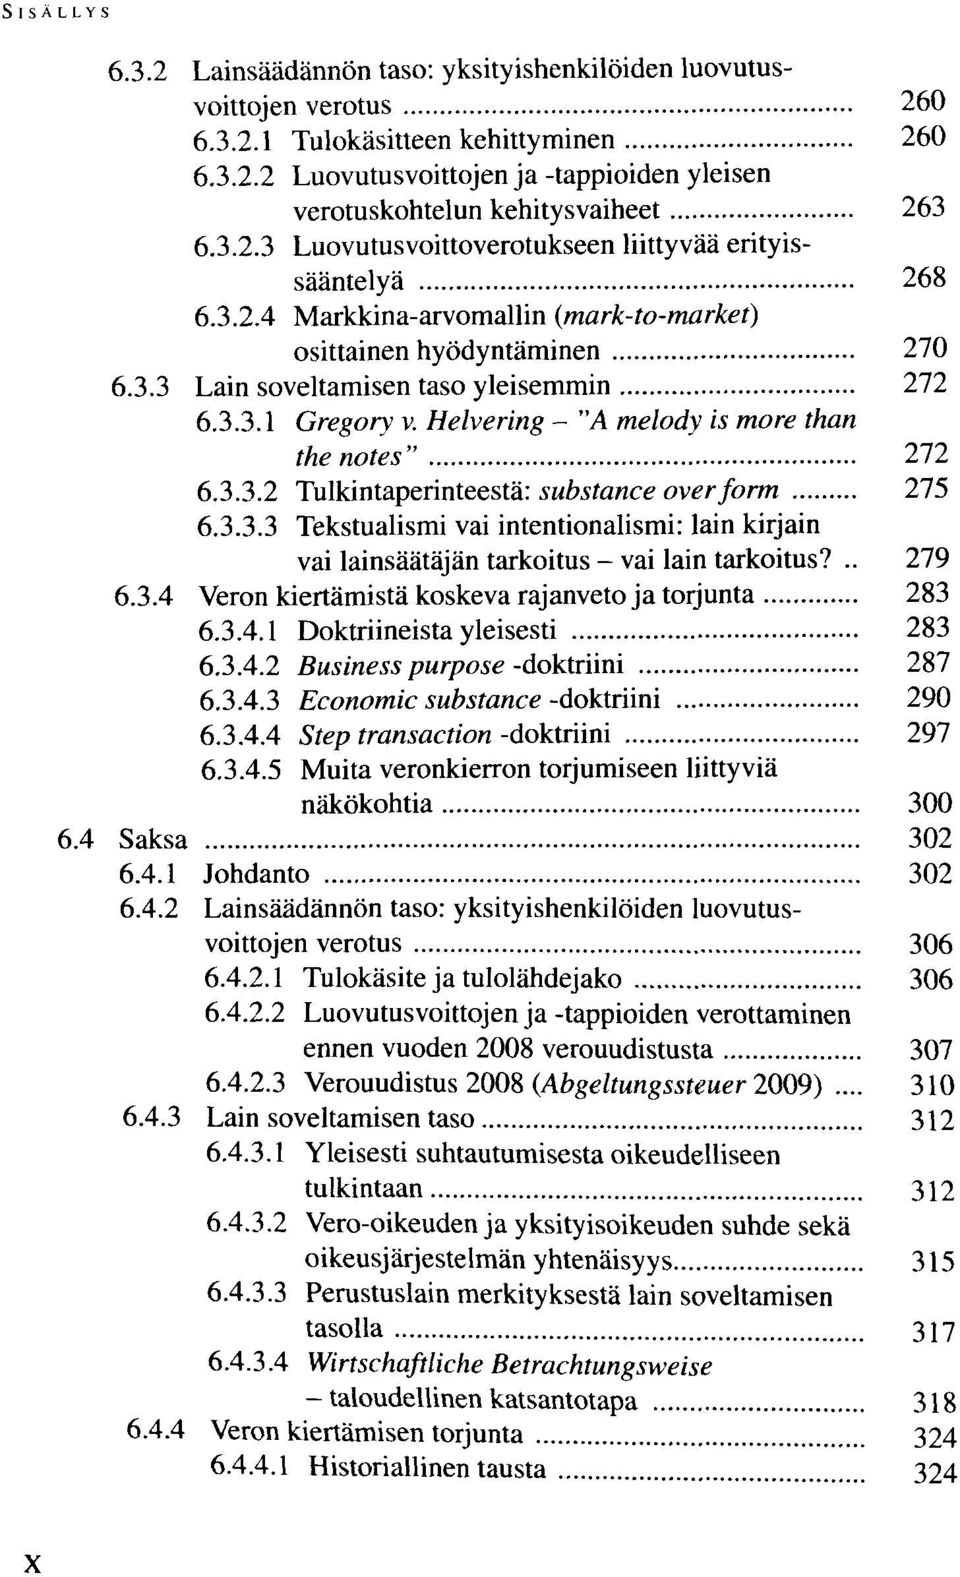 "Helvering - ""A melody is more than the notes"" 272 6.3.3.2 Tulkintaperinteestä: substance overform 275 6.3.3.3 Tekstualismi vai intentionalismi: lain kirjain vai lainsäätäjän tarkoitus - vai lain tarkoitus?"